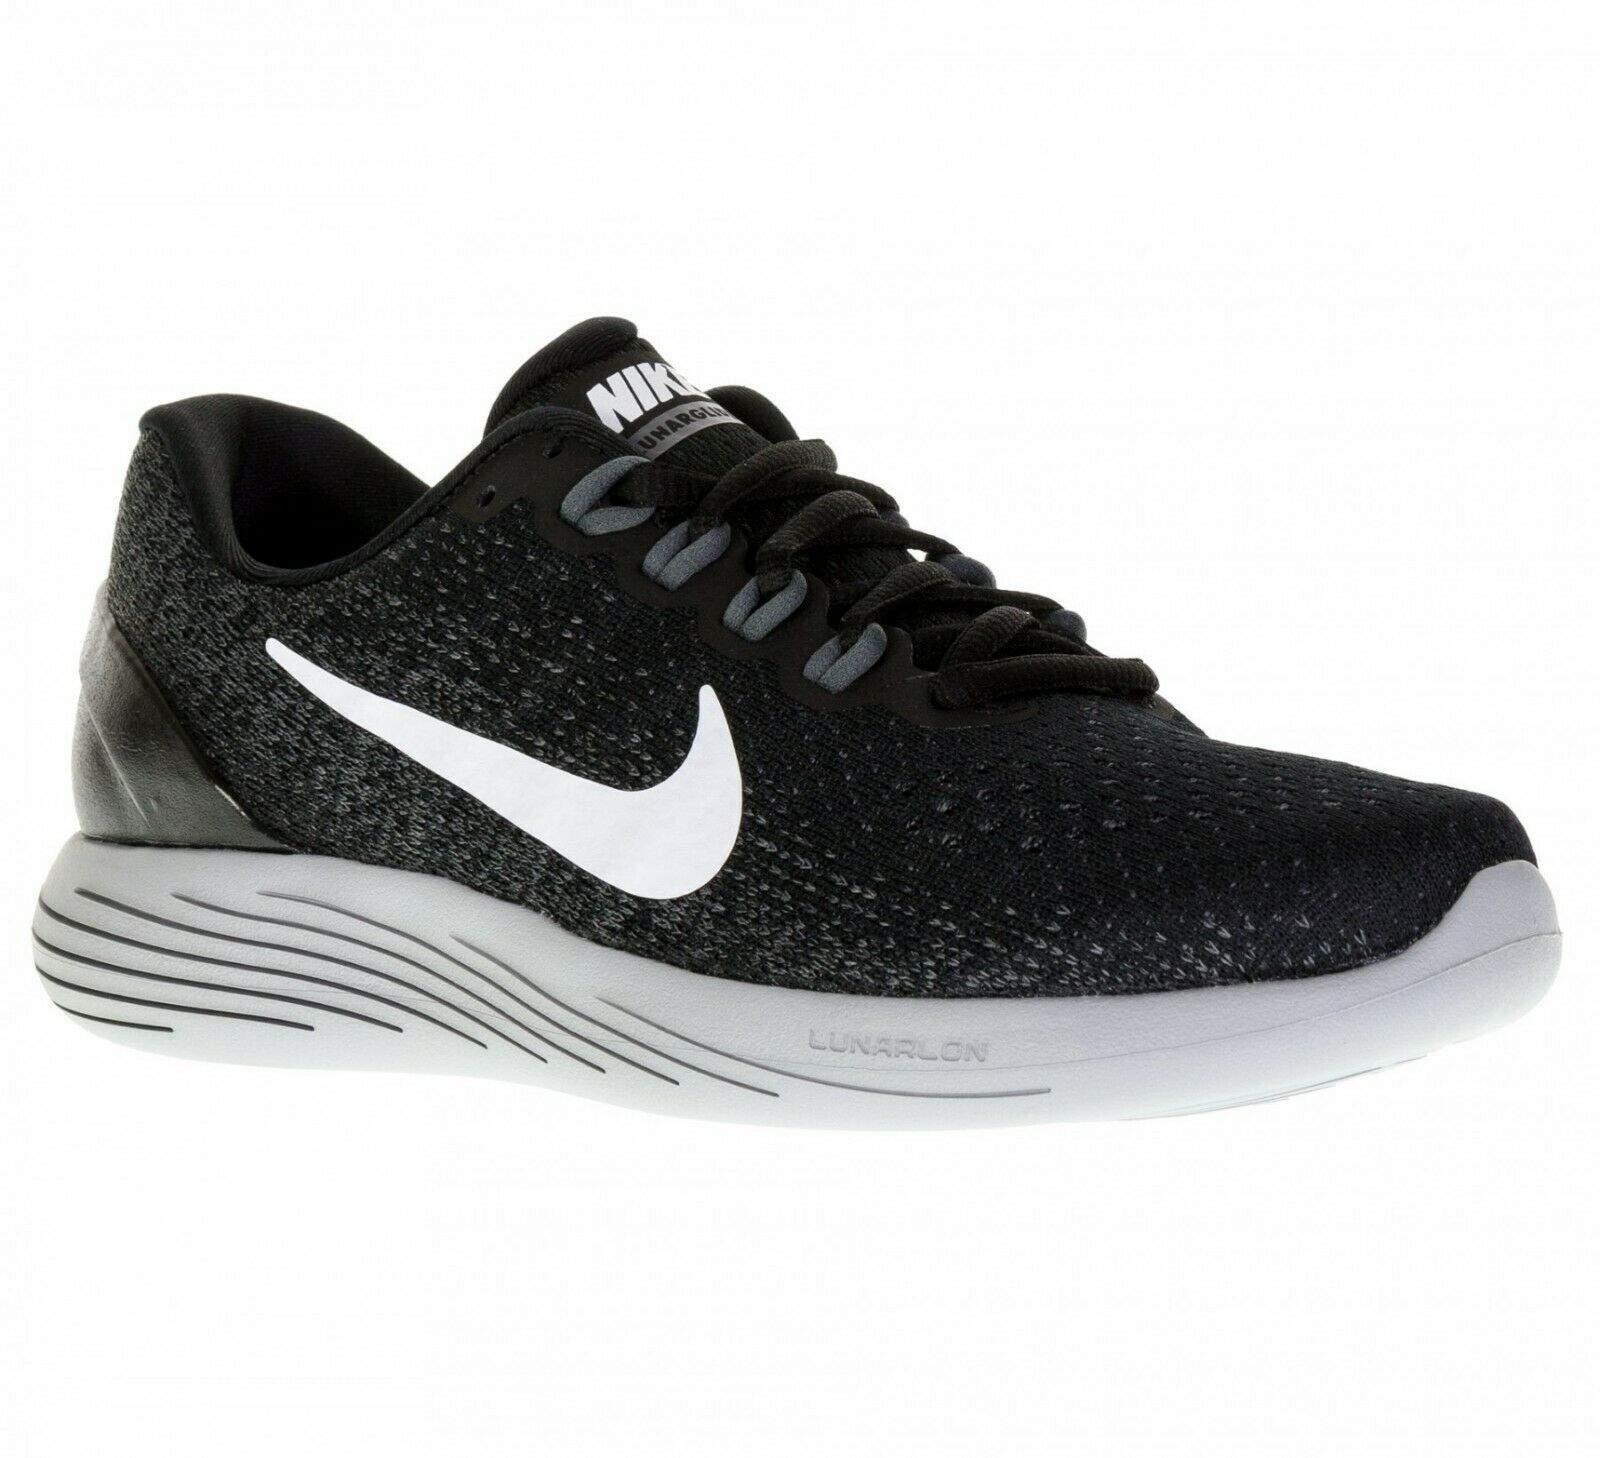 Primary image for Nike LunarGlide 9 Black Dark Grey Women's Running Shoes Size 10.5 [904716-001]